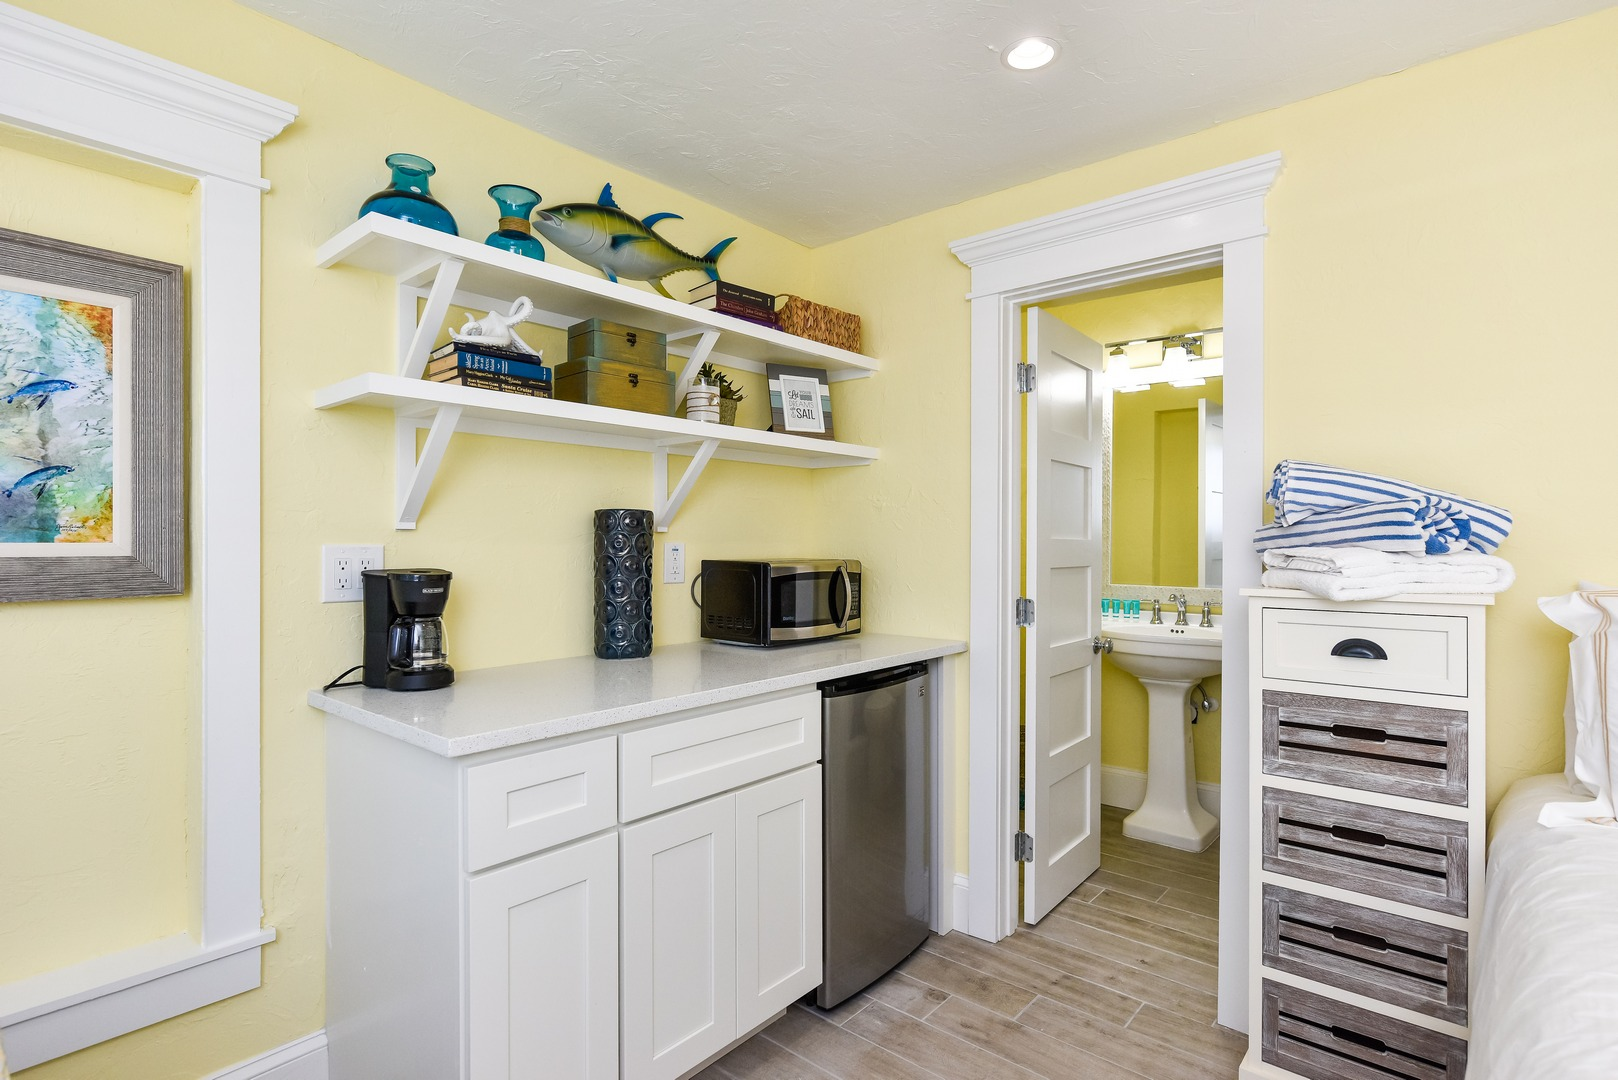 Kitchenette and Food Preparation Space